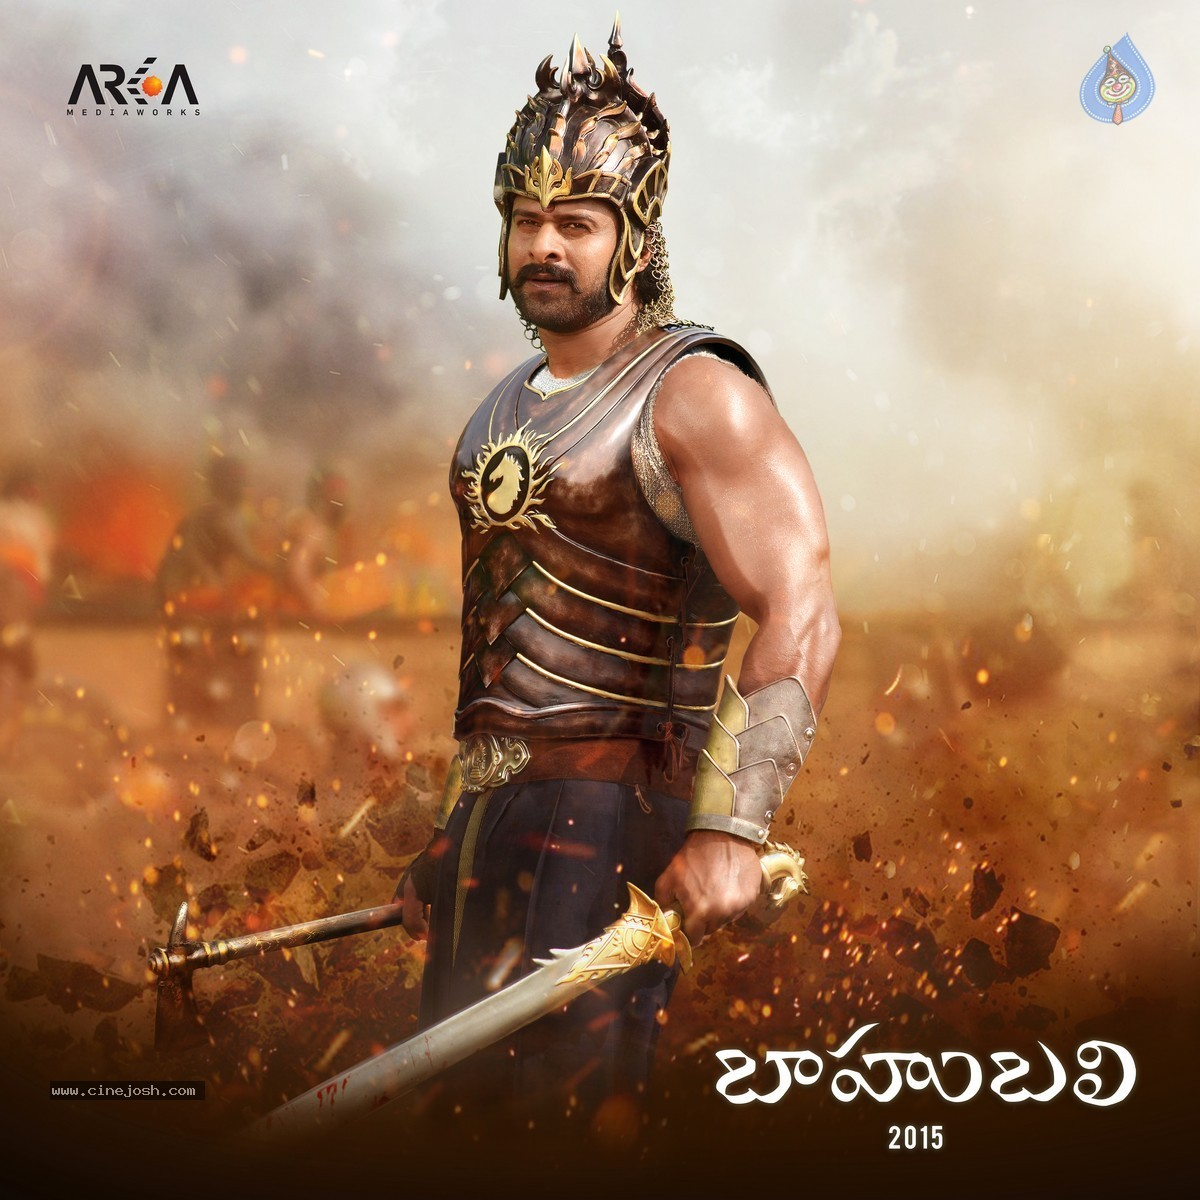 Hd wallpaper bahubali 2 - Bahubali Prabhas New Poster Hd 1 Of 2